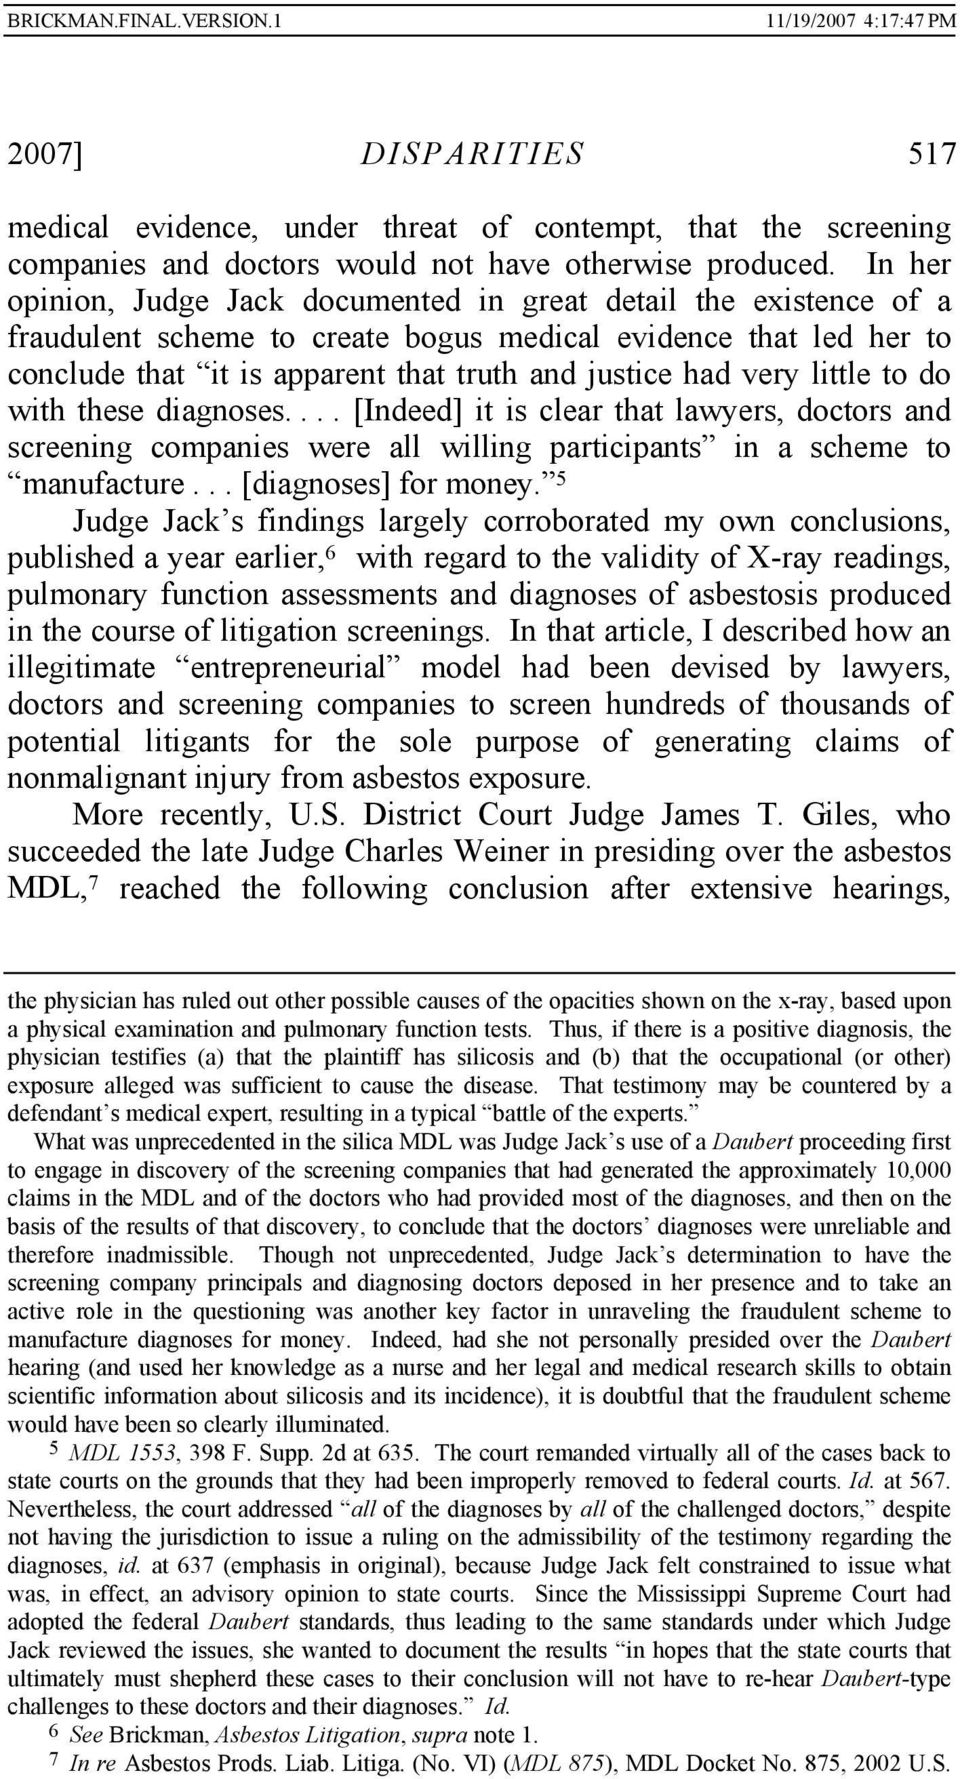 very little to do with these diagnoses.... [Indeed] it is clear that lawyers, doctors and screening companies were all willing participants in a scheme to manufacture... [diagnoses] for money.